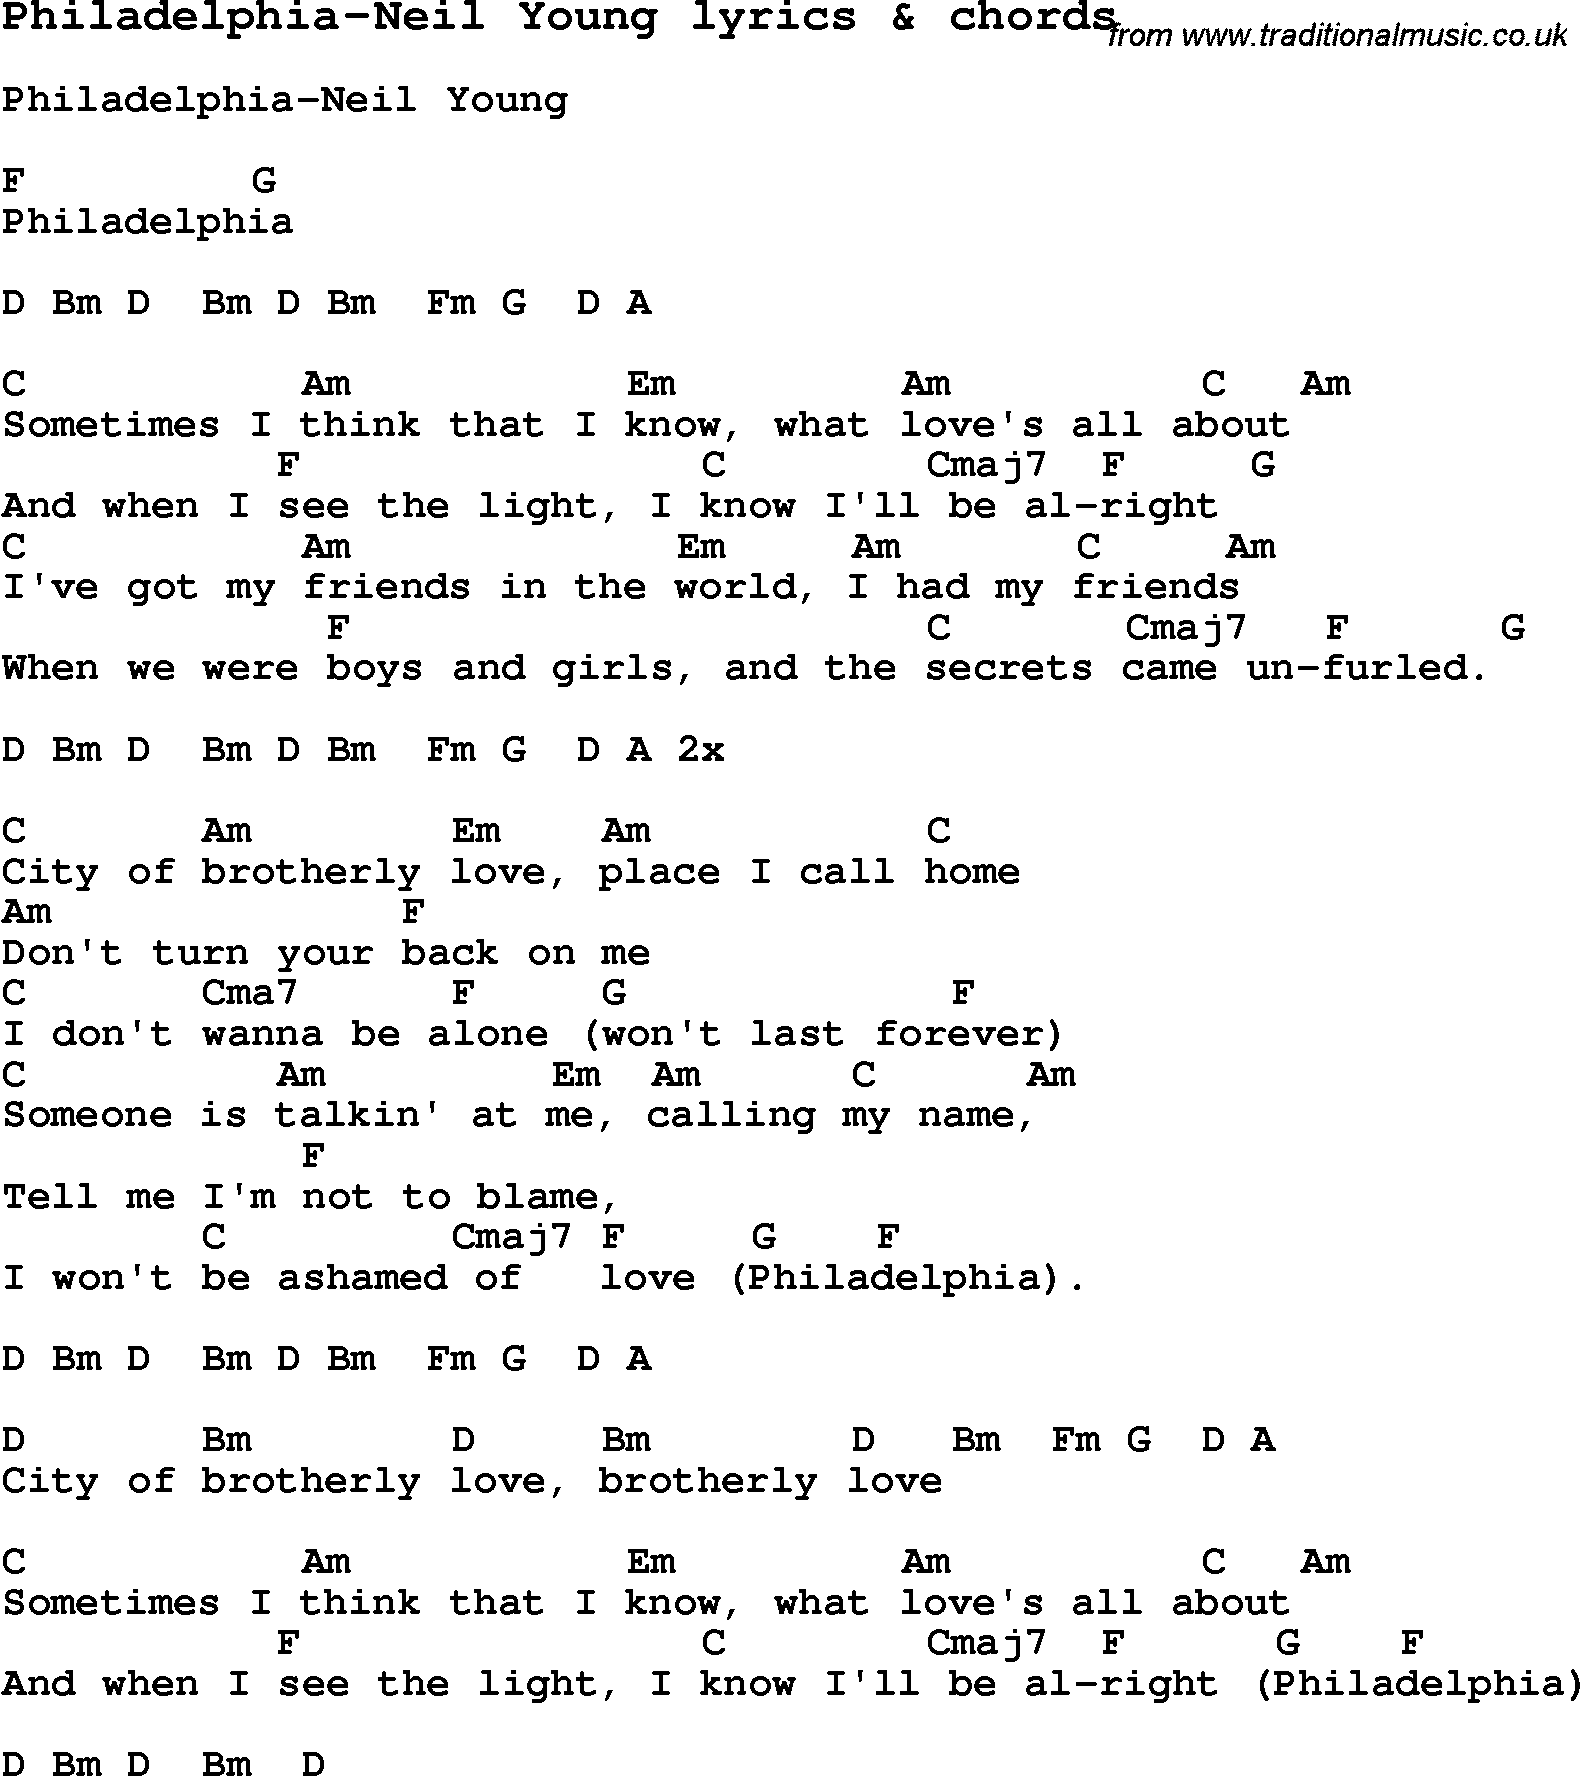 Love Song Lyrics for:Philadelphia-Neil Young with chords.